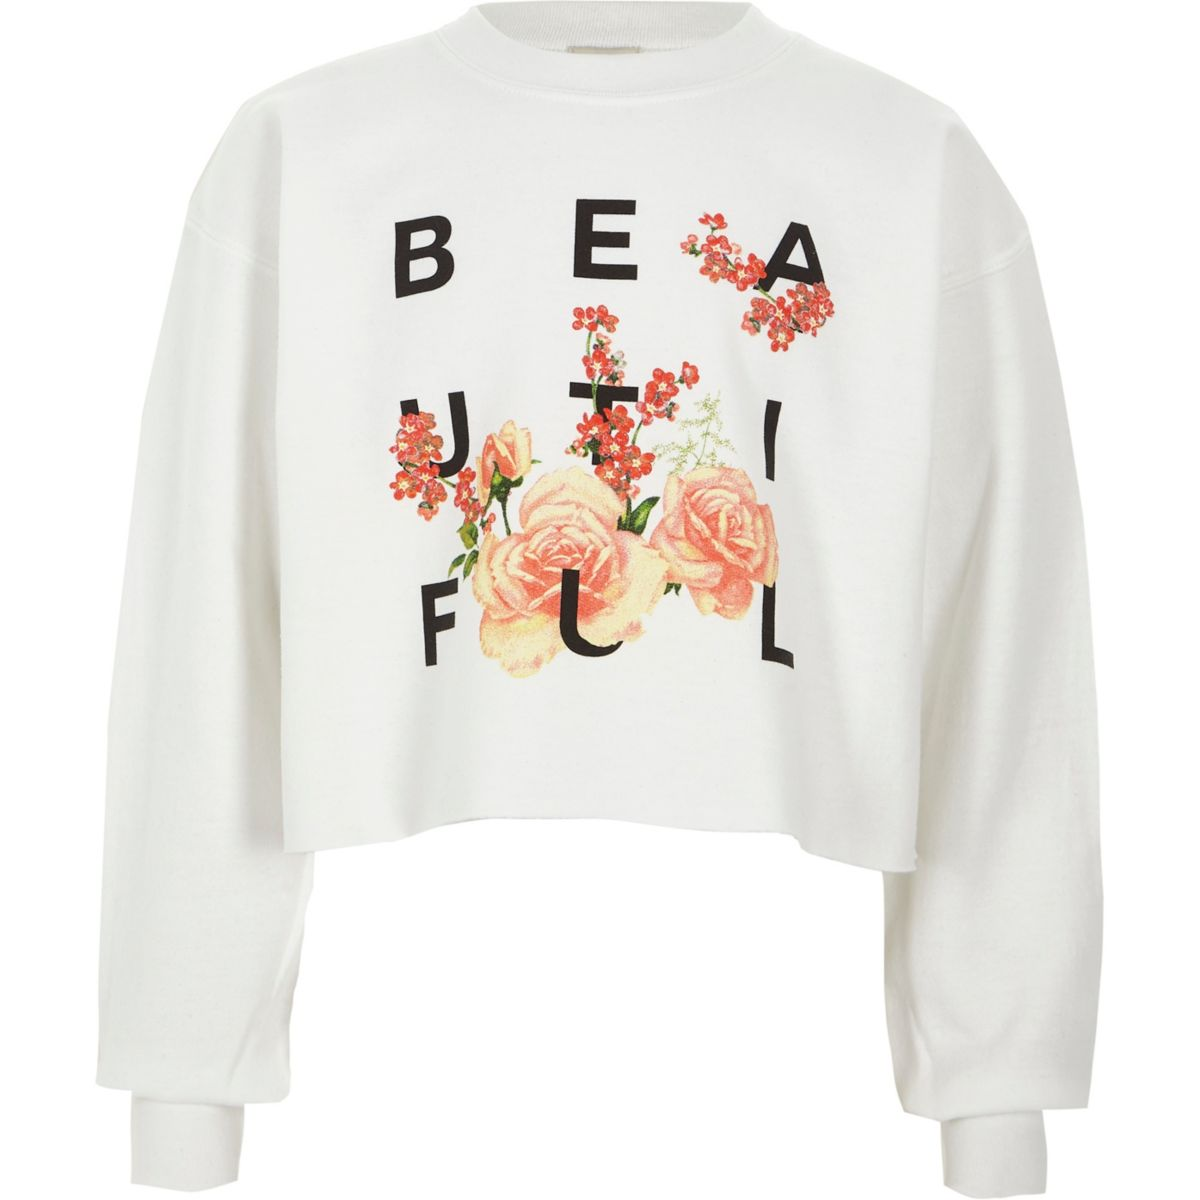 River Island white 'beautiful' cropped sweatshirt